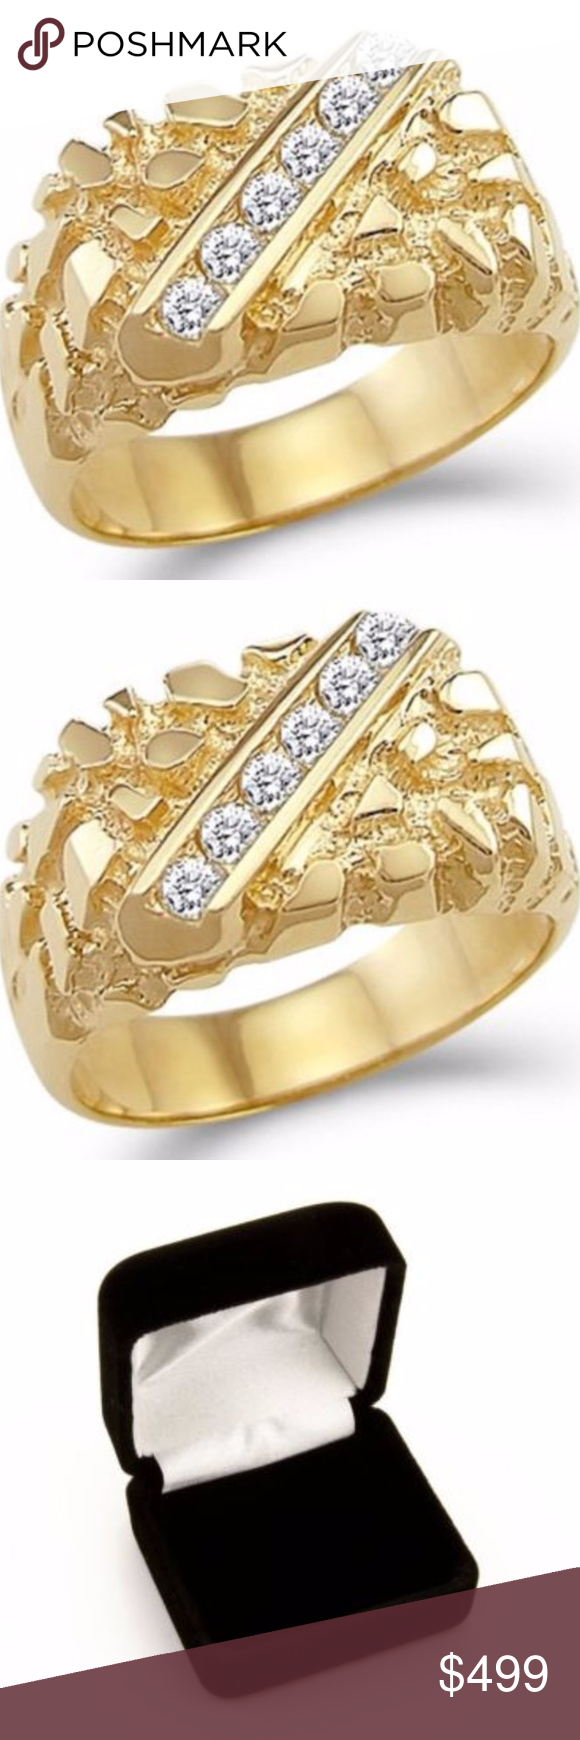 14k Solid Yellow Gold Mens Heavy Nugget Ring Man Made Diamonds Yellow Gold Jewelry Accessories